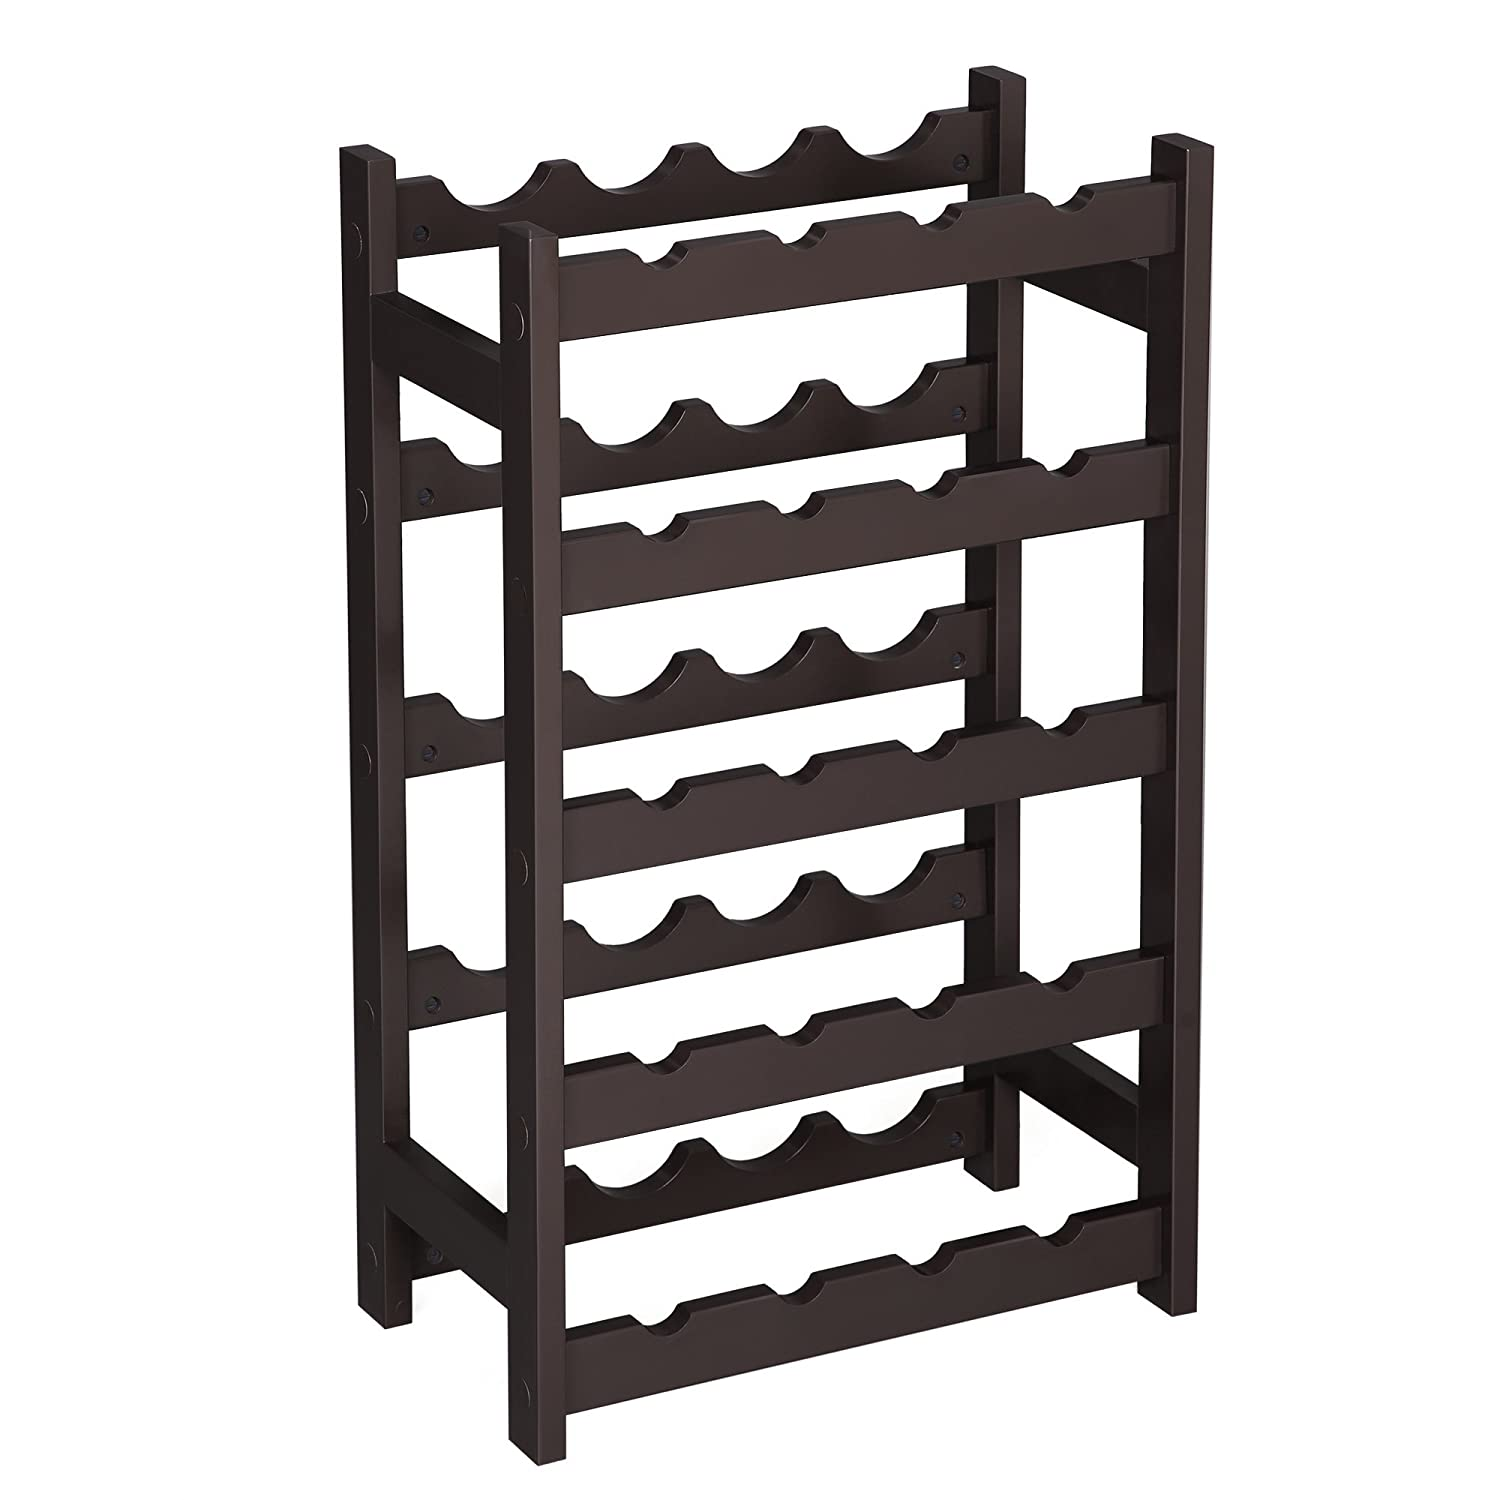 Amazoncom Songmics Wood 20 Bottle Wine Display Rack, Free Standing Bottles